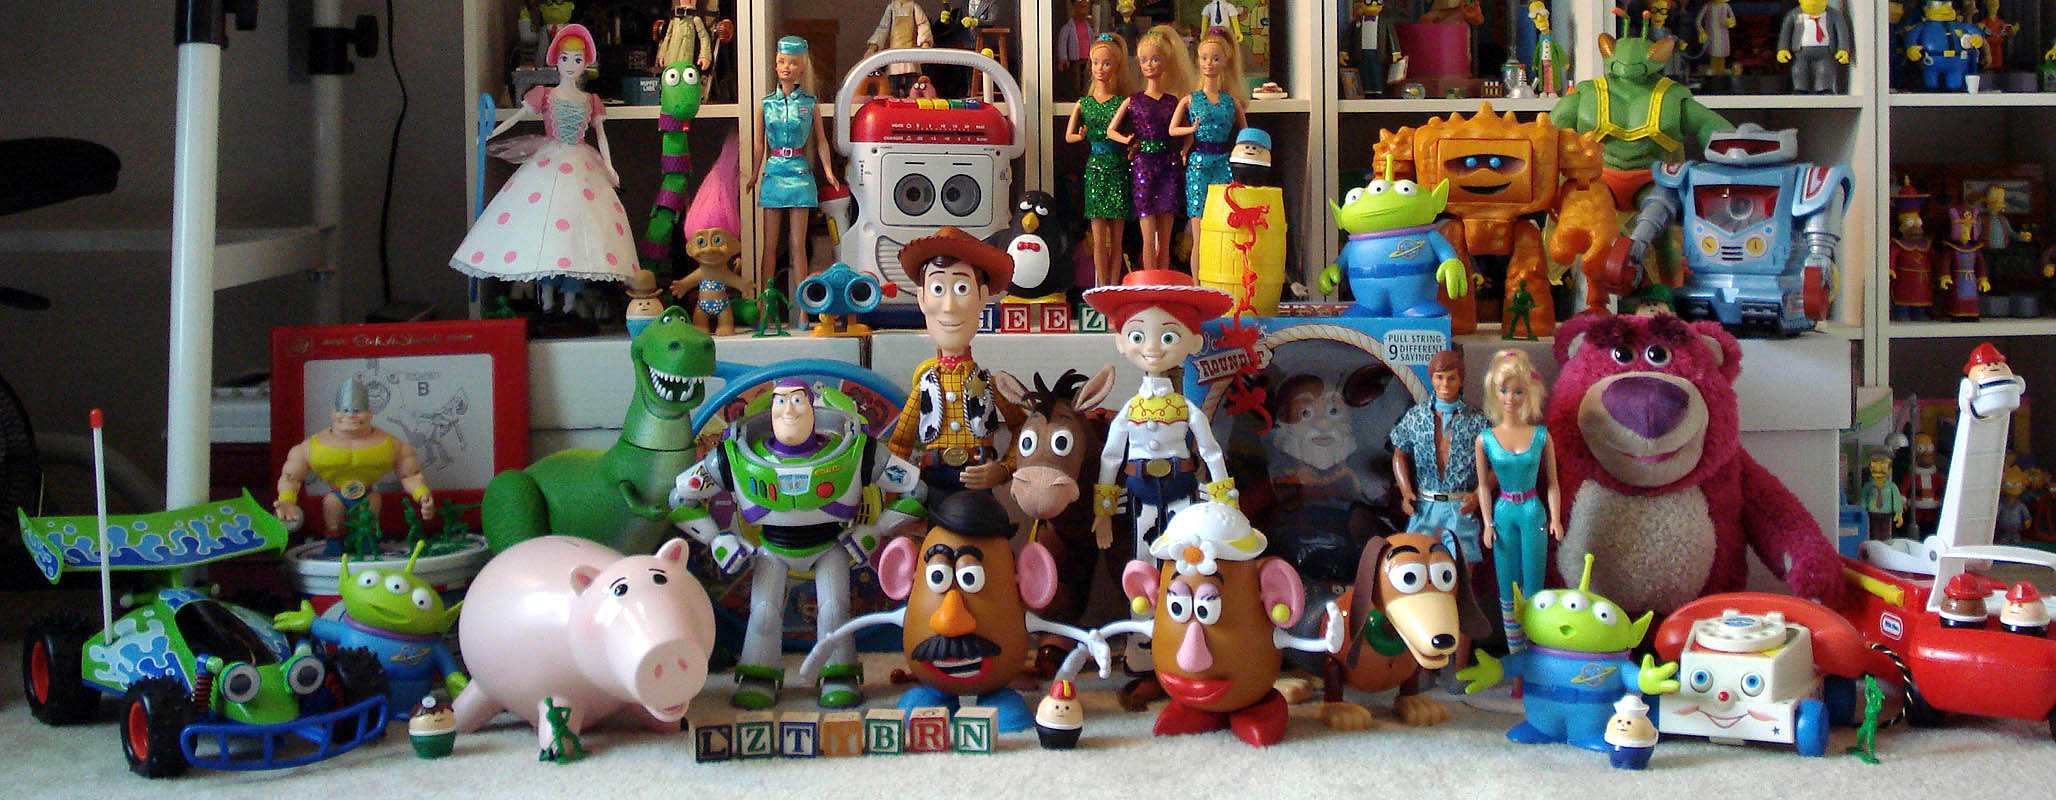 Toy Story Collection Myconfinedspace